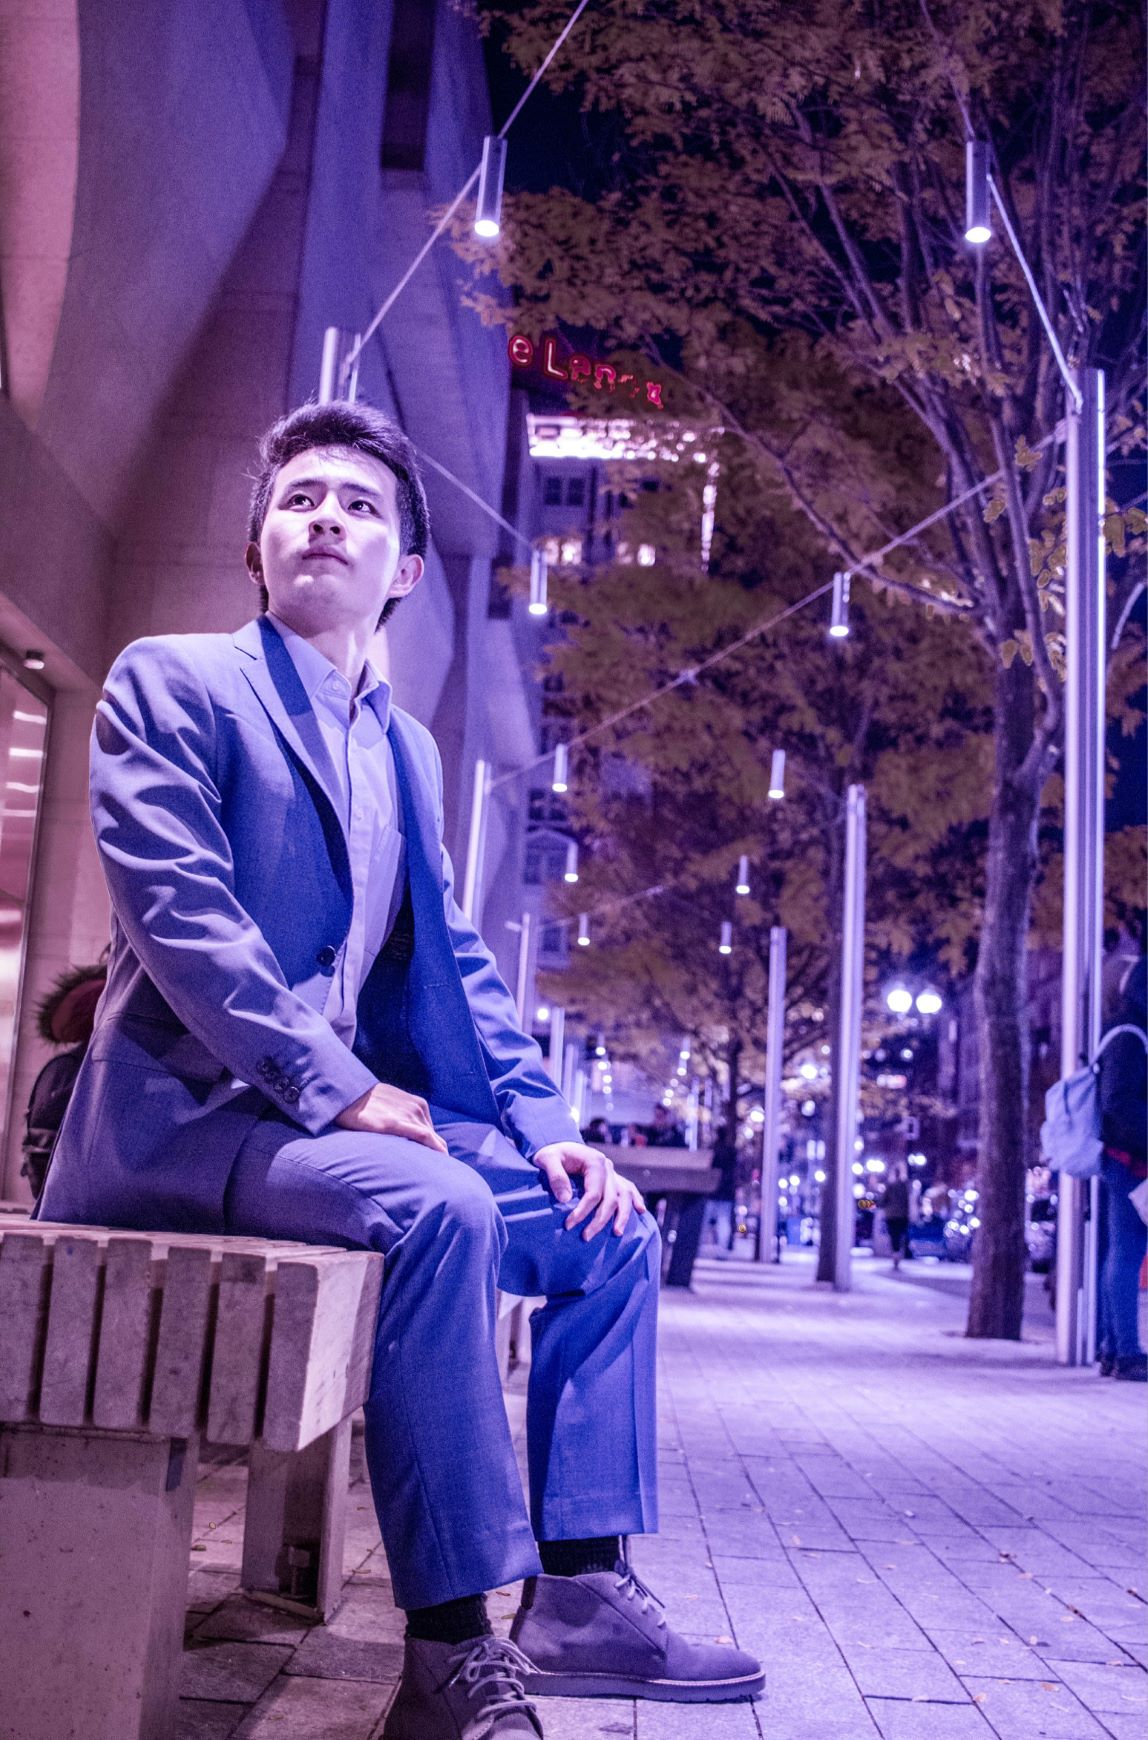 Shawn Shao sitting on bench